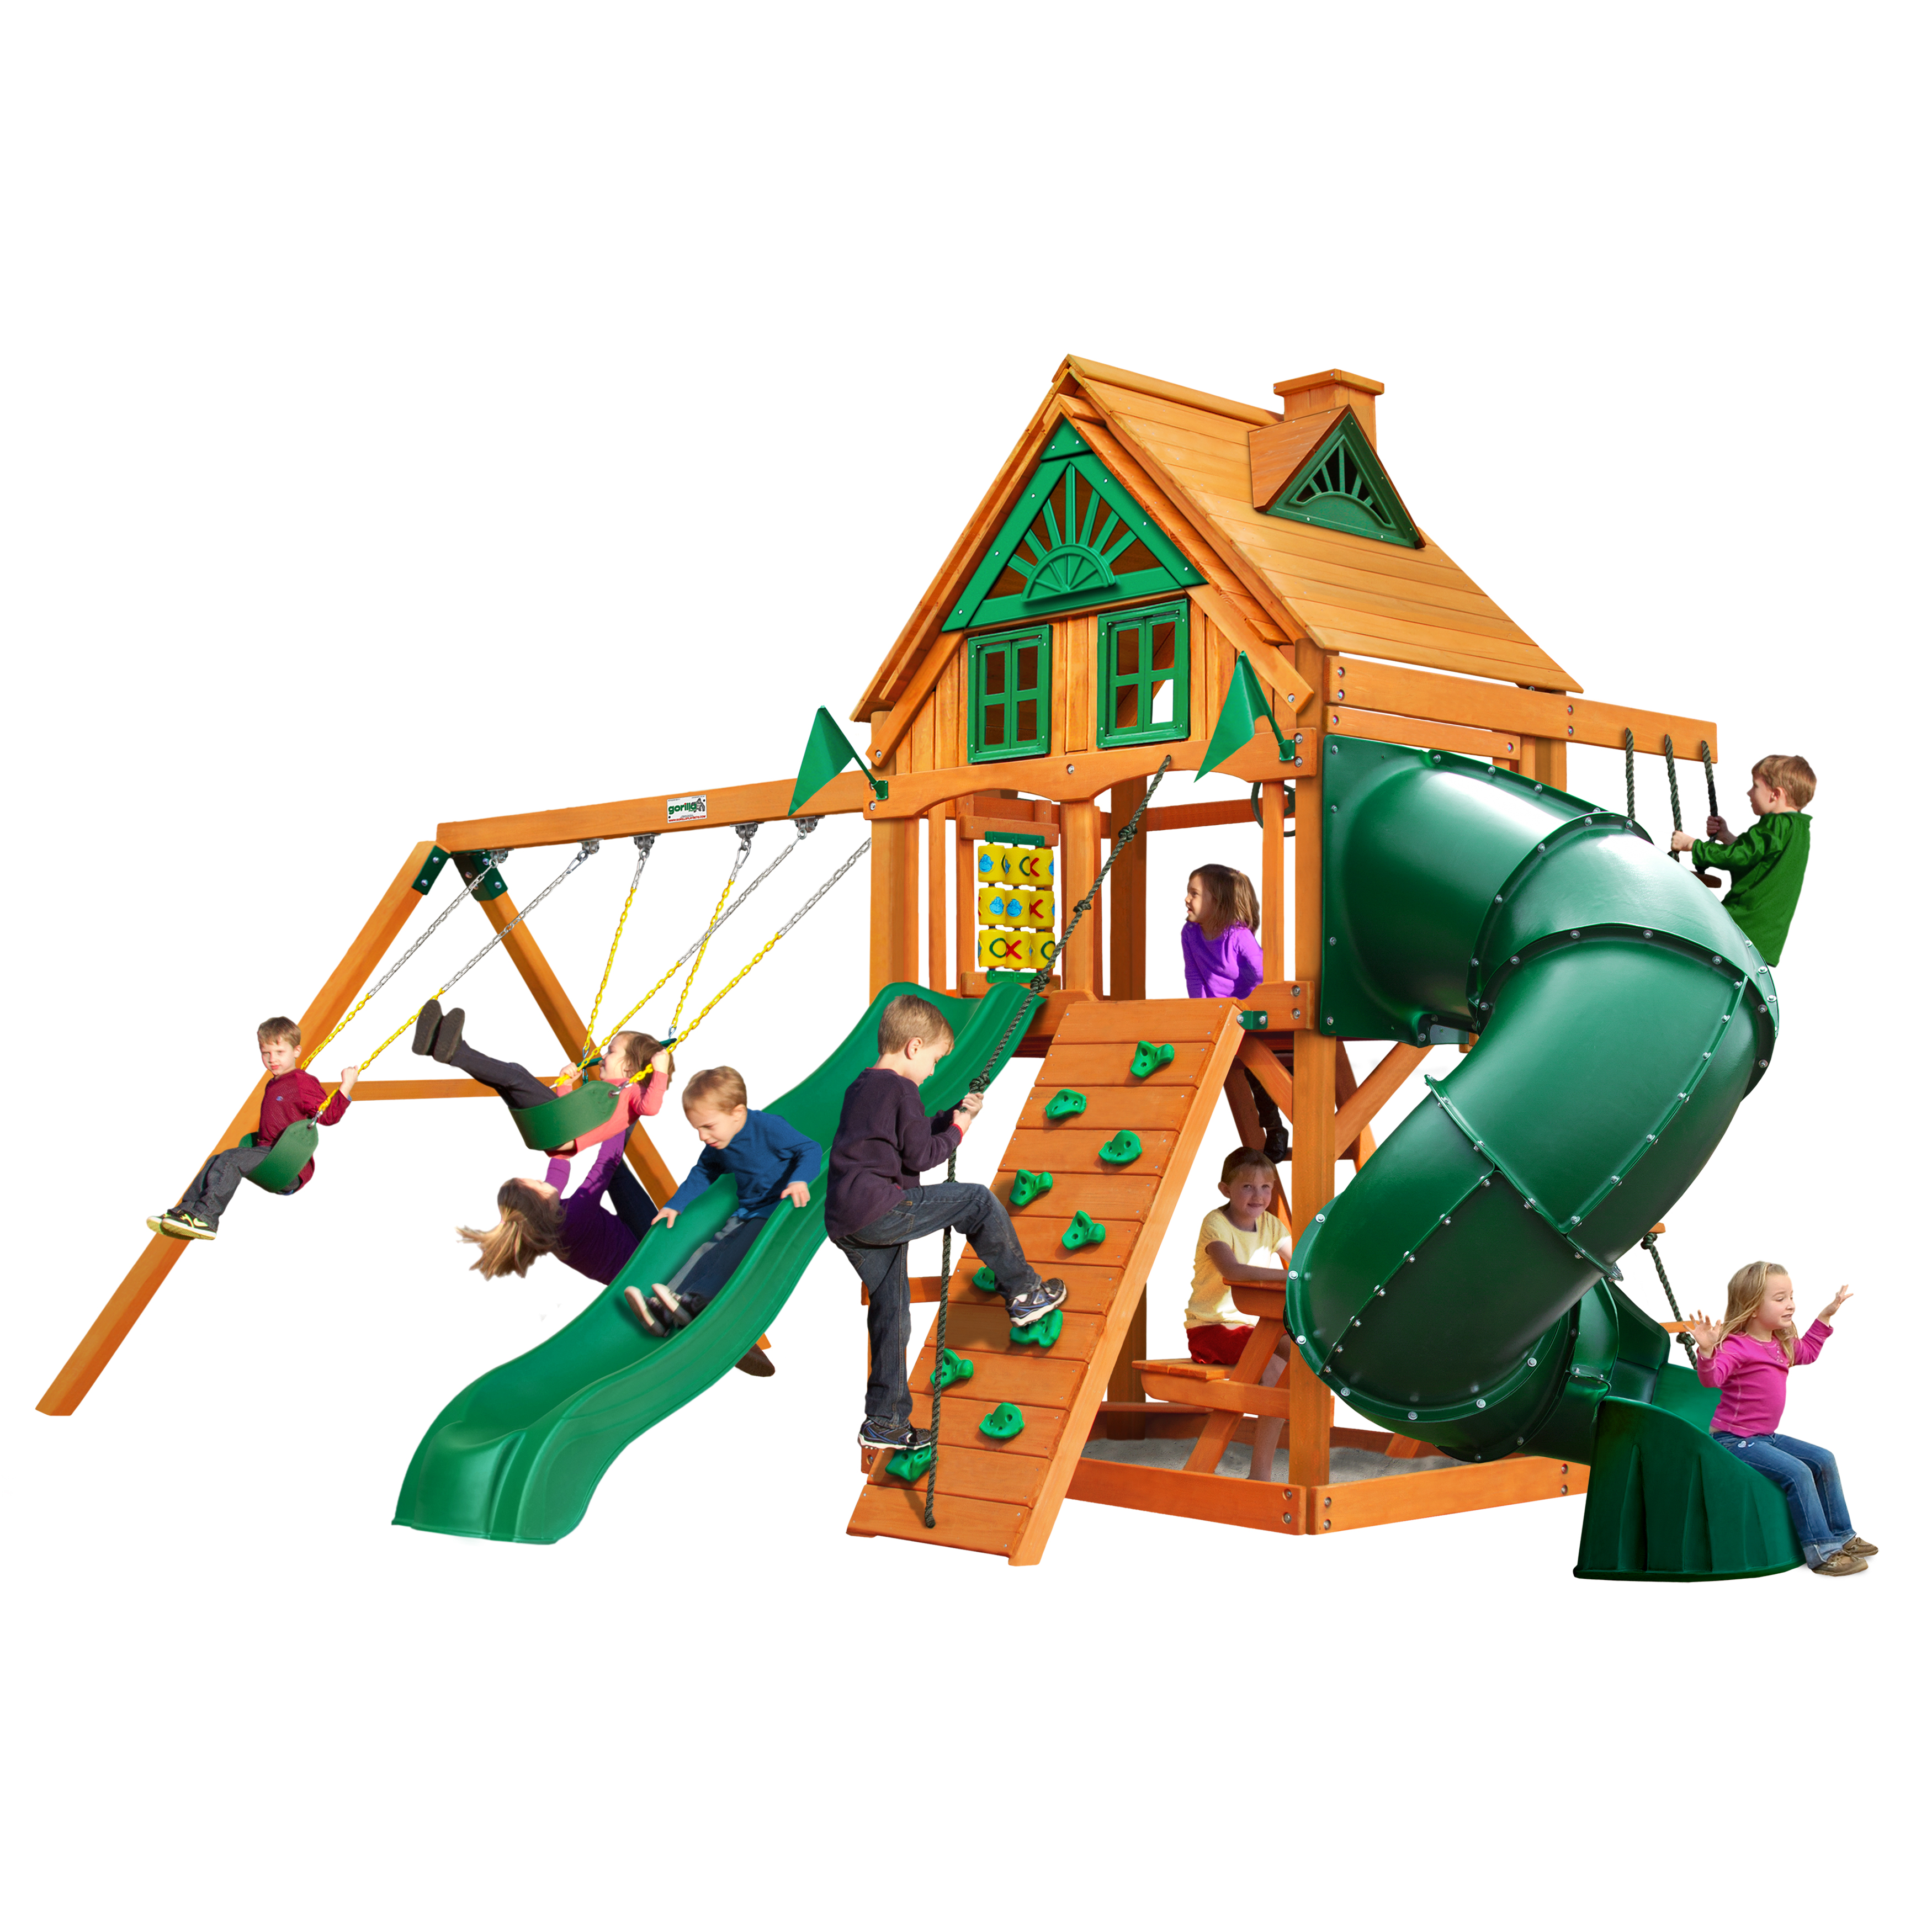 Mountaineer Treehouse Cedar Swing Set with Natural Cedar Posts